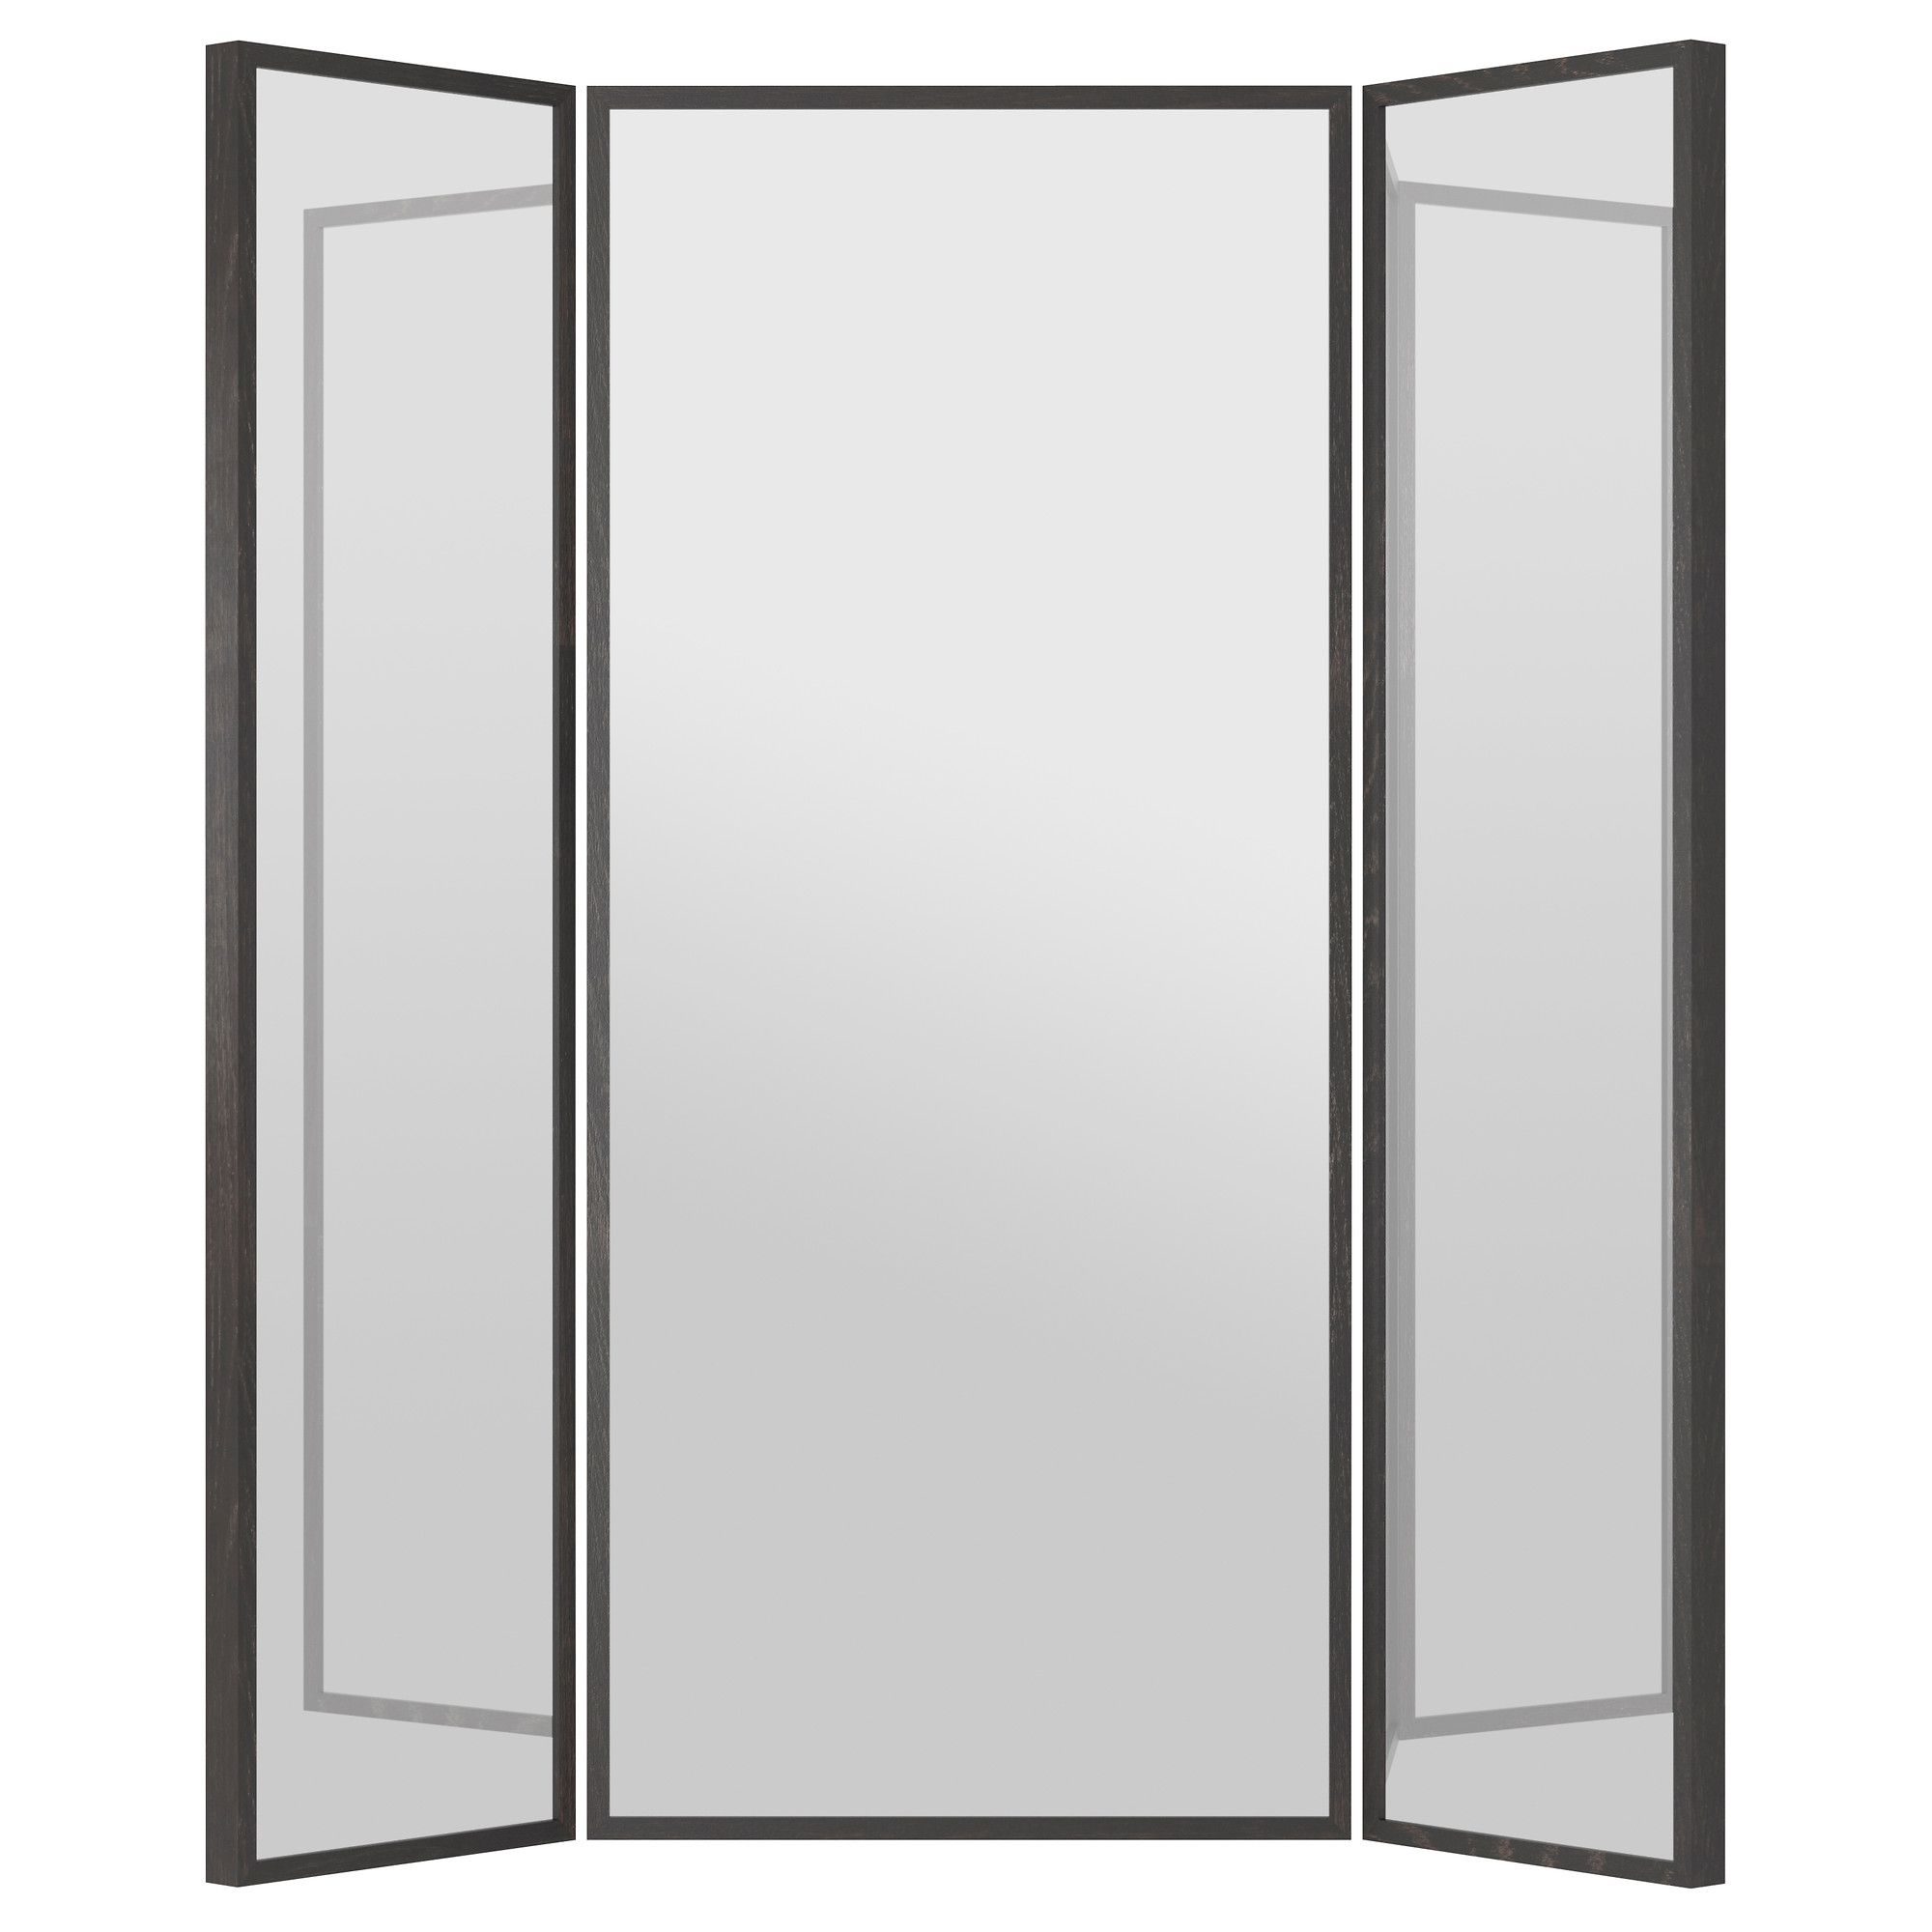 Products Stave Mirror Ikea Stave Mirror Trifold Mirror Full length 3 way mirror